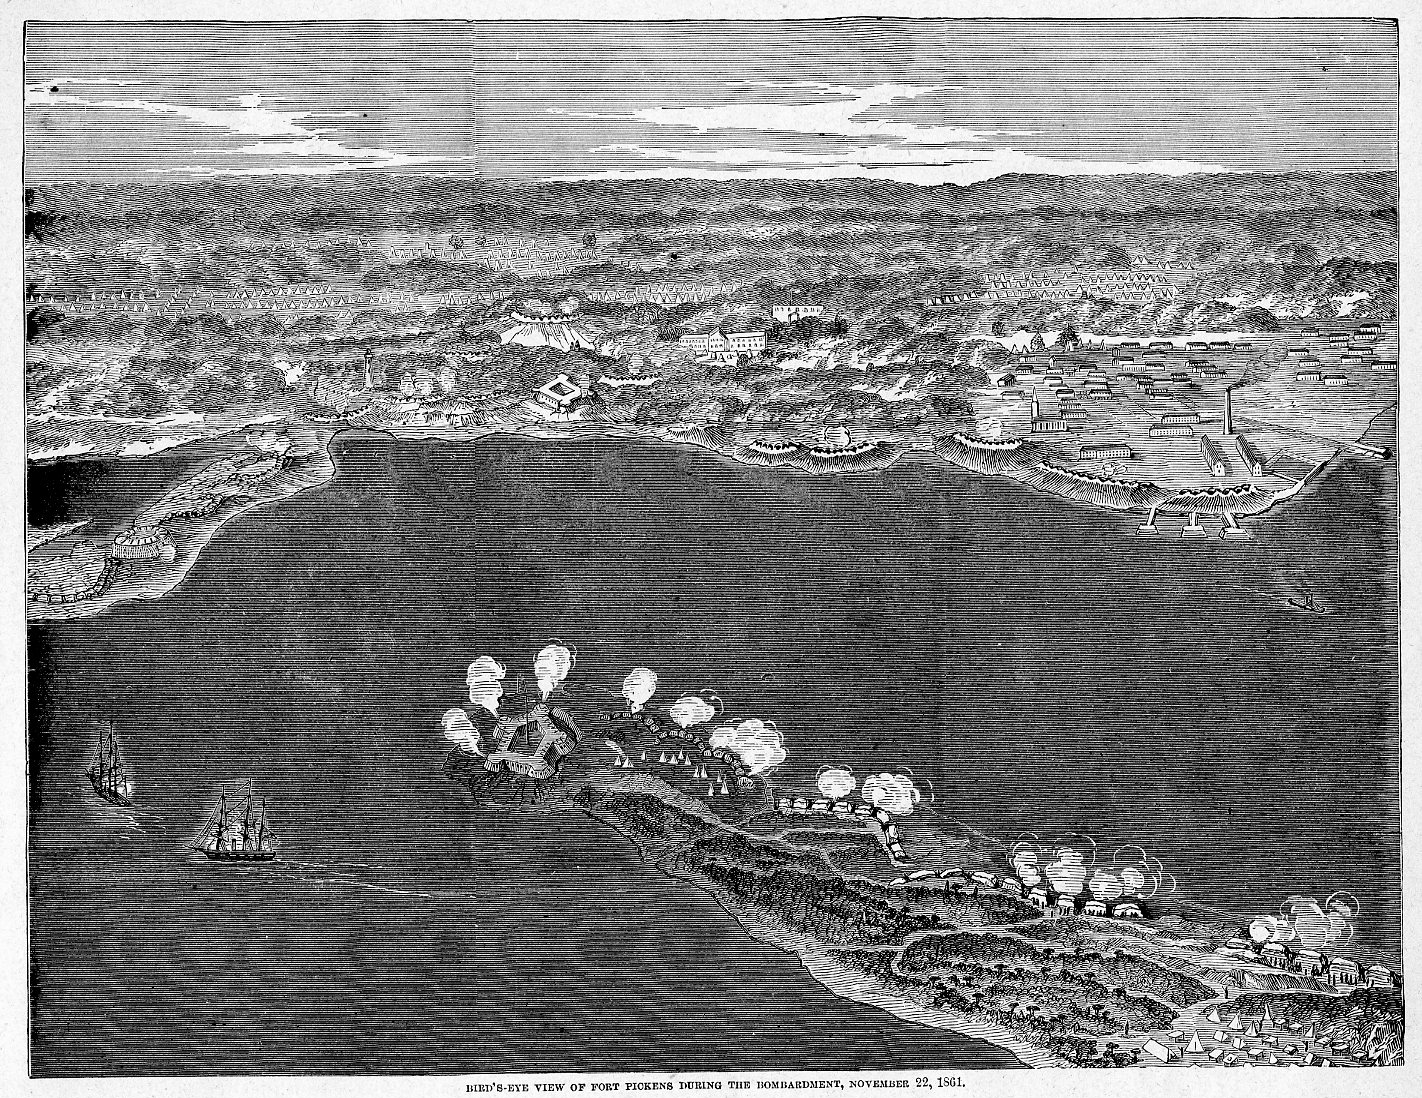 lincolns limited options regarding the demand for the return of fort sumter and fort pickens Pickens's messenger arrived with a demand for fort sumter's surrender he would then reject it, ending the armistice honorably and freeing him to proceed with reinforcement plans—if the political situation permitted .